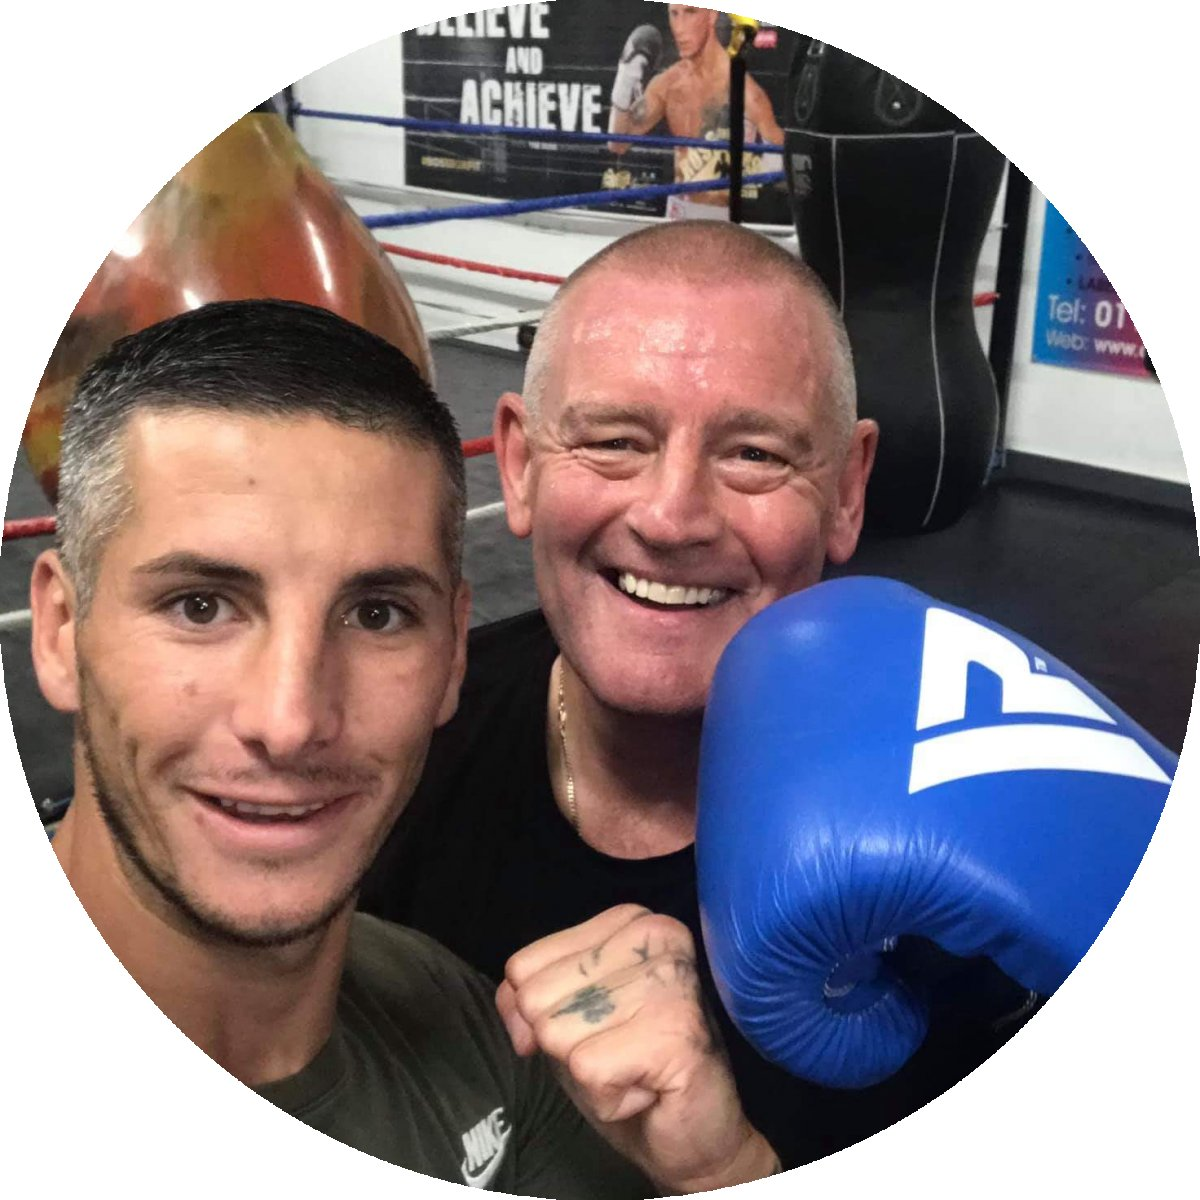 Lee Rodgers's profile pic